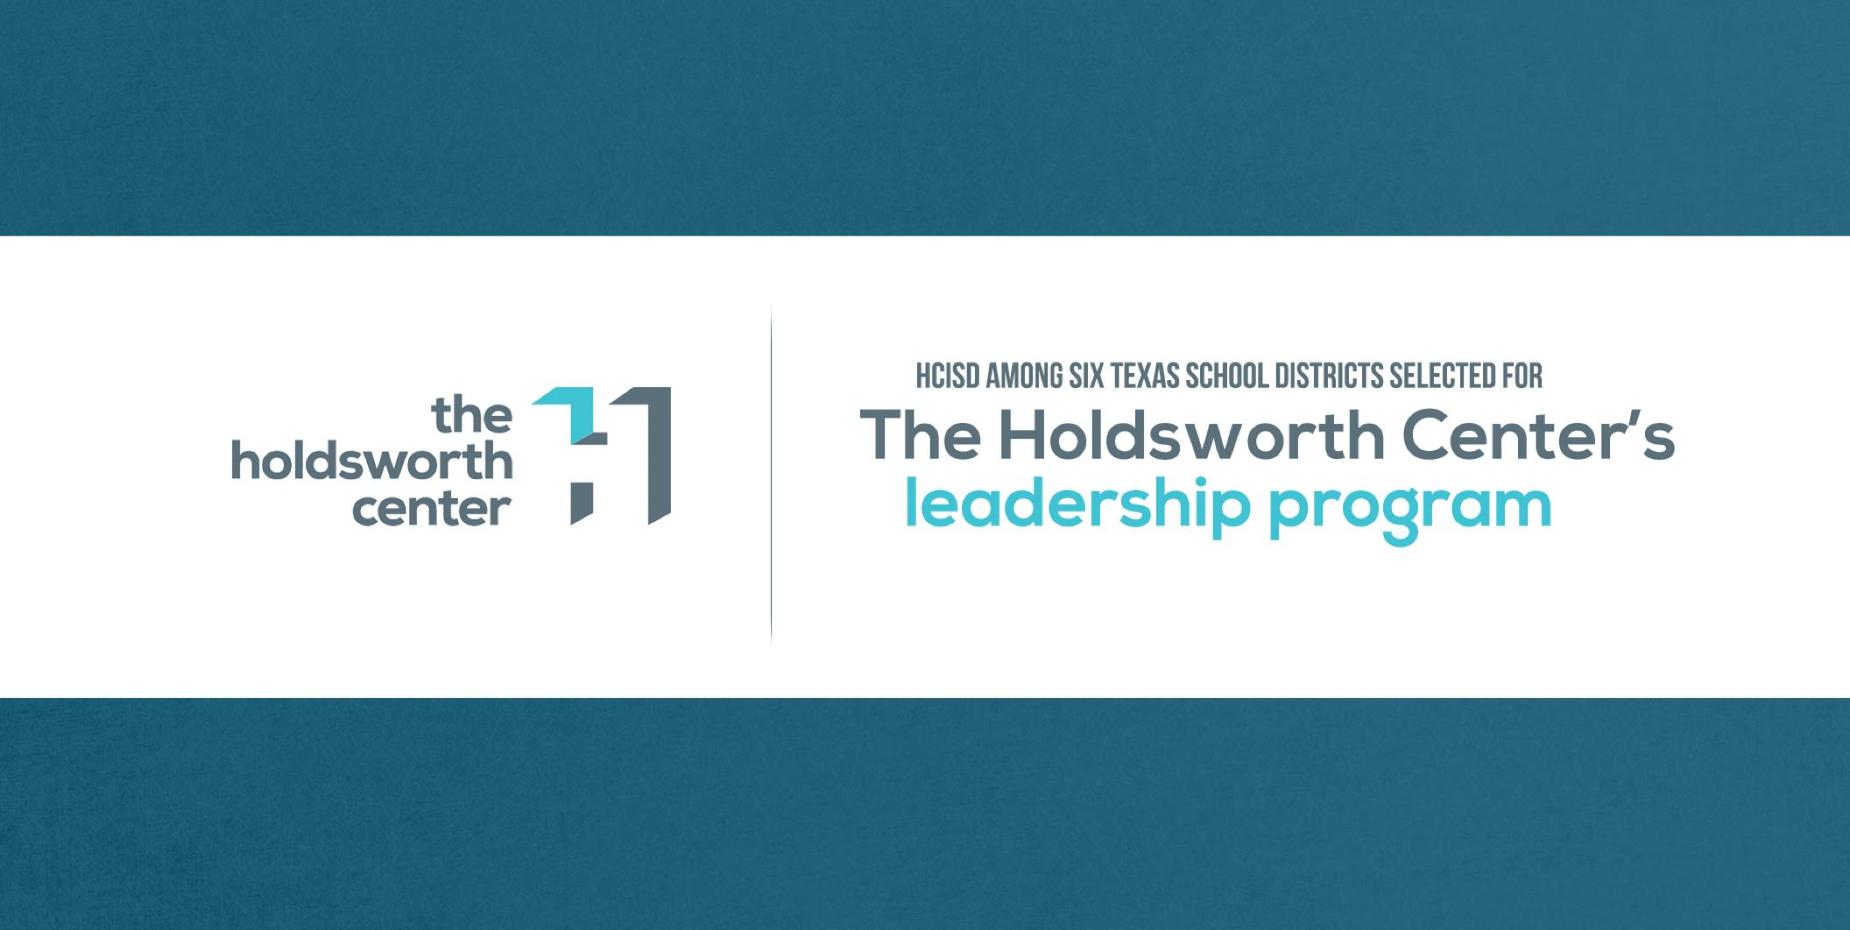 HCISD AMONG SIX TEXAS SCHOOL DISTRICTS SELECTED FOR THE HOLDSWORTH CENTER'S LEADERSHIP PROGRAM